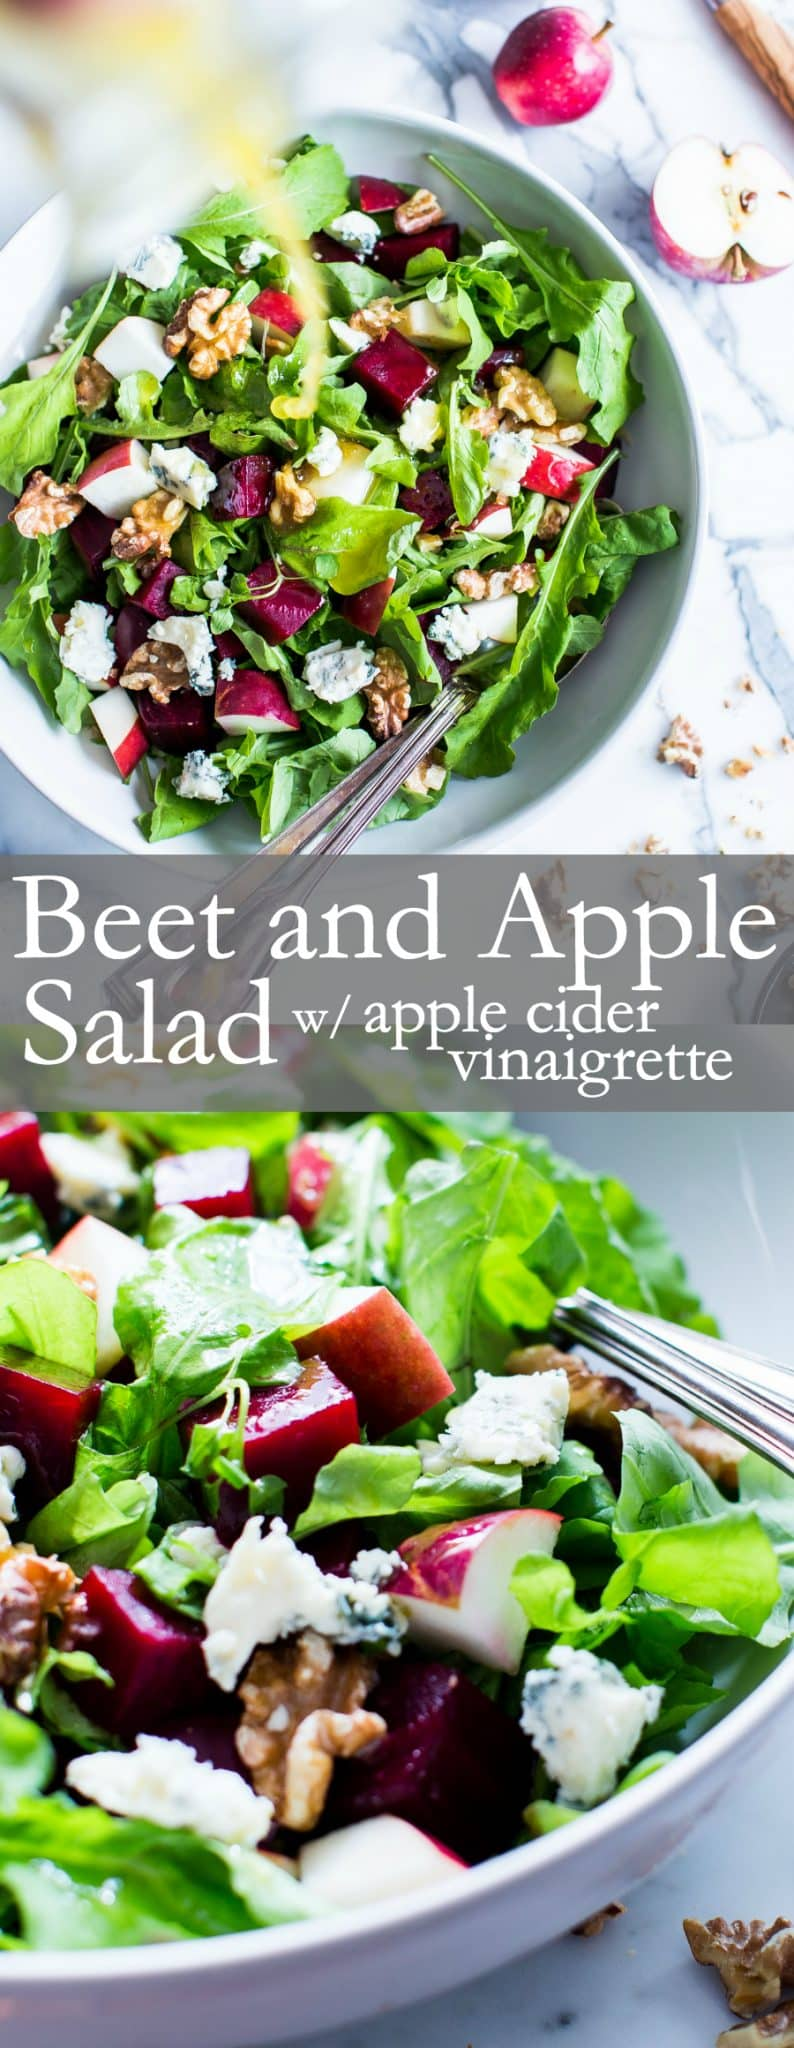 Nourishing fall flavors come together in this simple yet flavor packed salad. With a snappy dressing, Beet and Apple Salad with Apple Cider Vinaigrette is versatile enough to pull together with your favorite greens. | #VegetarianSalad #Vegan Option #GlutenFree